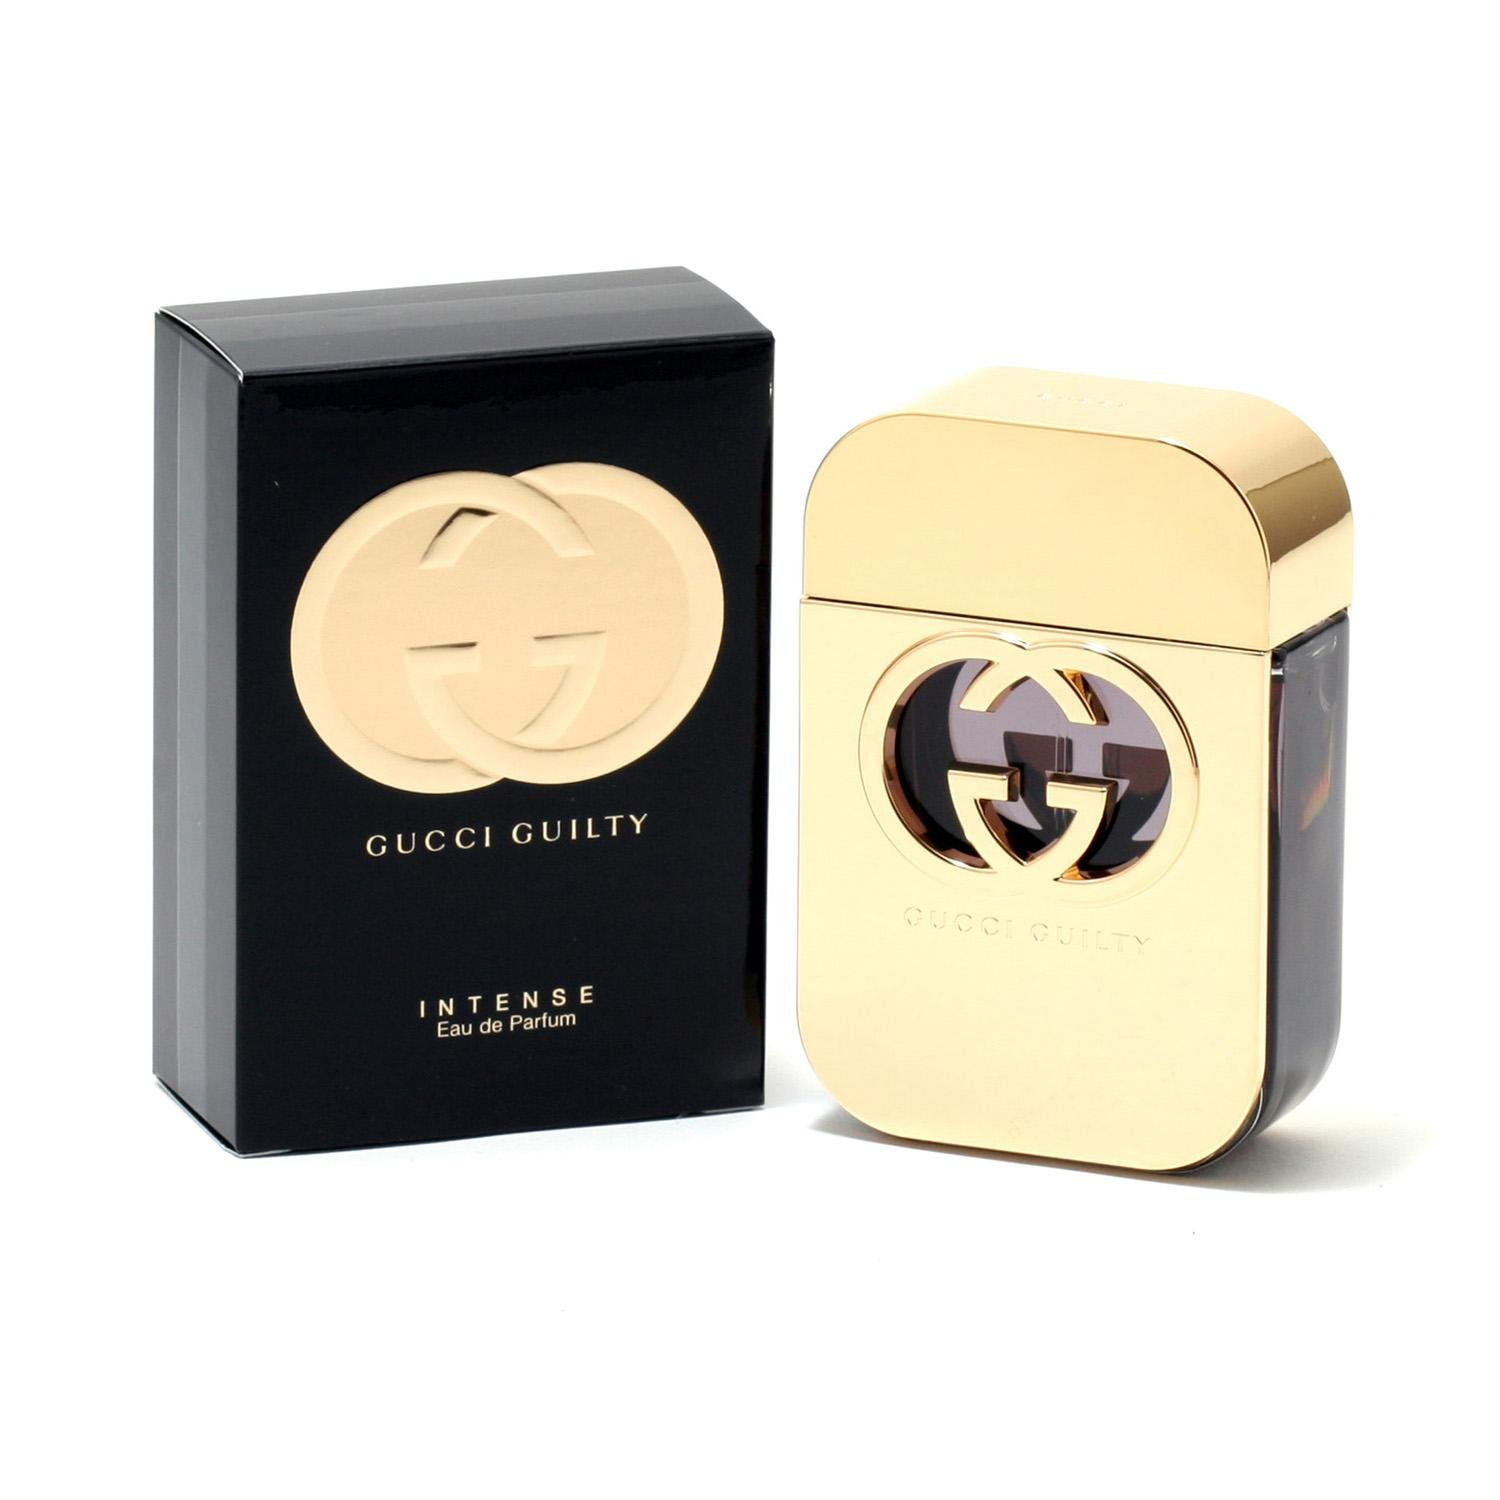 Feel yourself guilty of a celebration with Gucci Guilty Intense